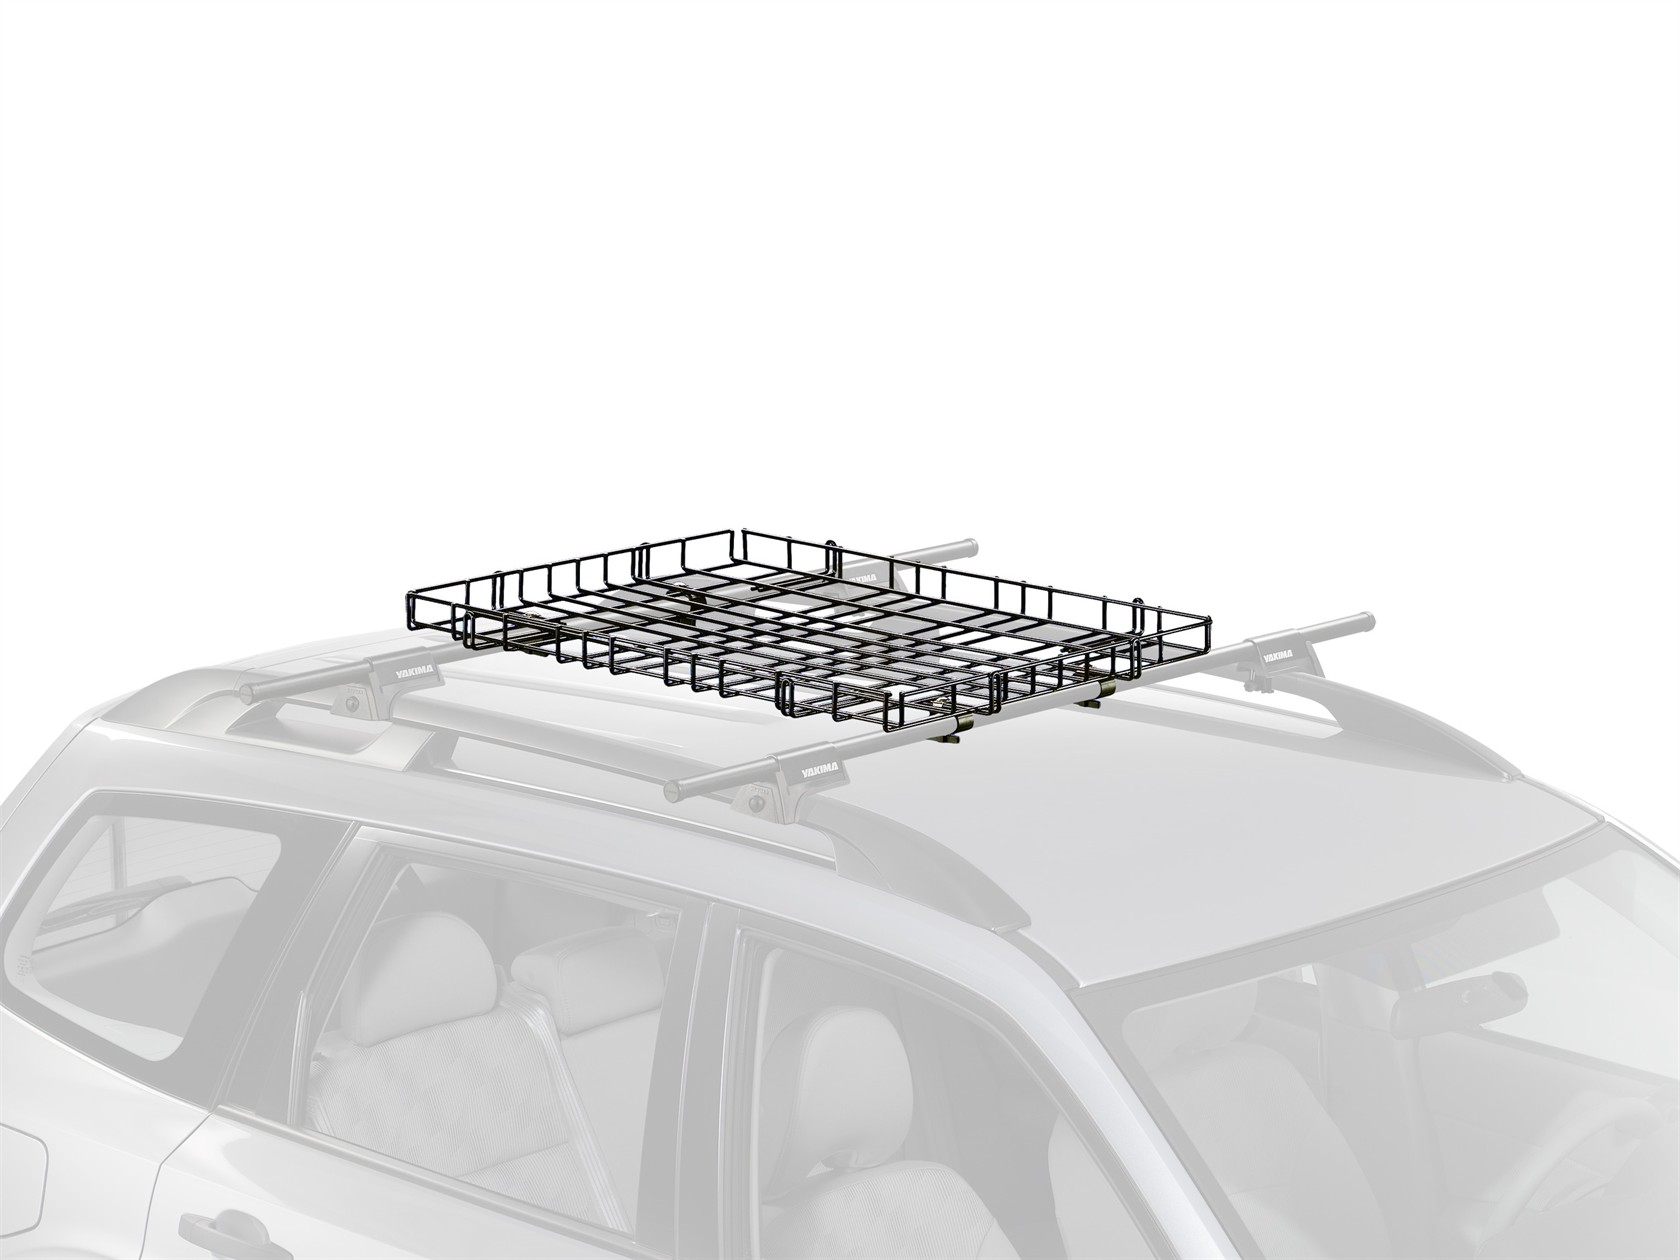 Yakima 8007012 BasketCase Rooftop Basket